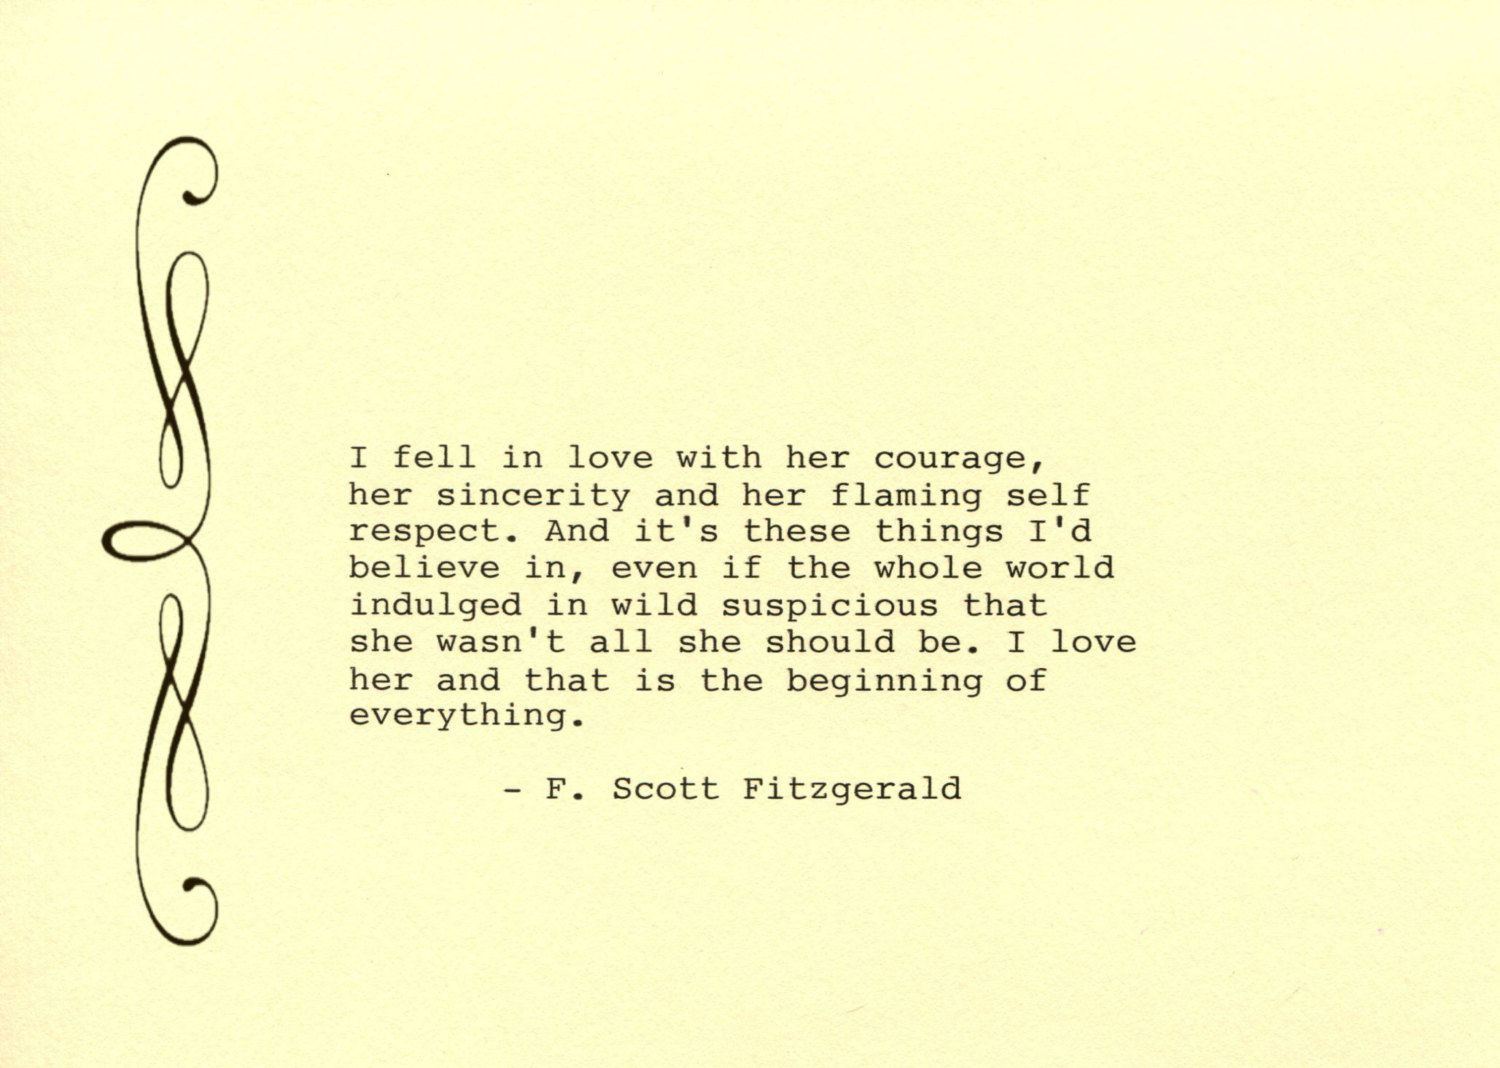 F. Scott Fitzgerald Quote Made on Typewriter Art Quote Wall Art - I ...